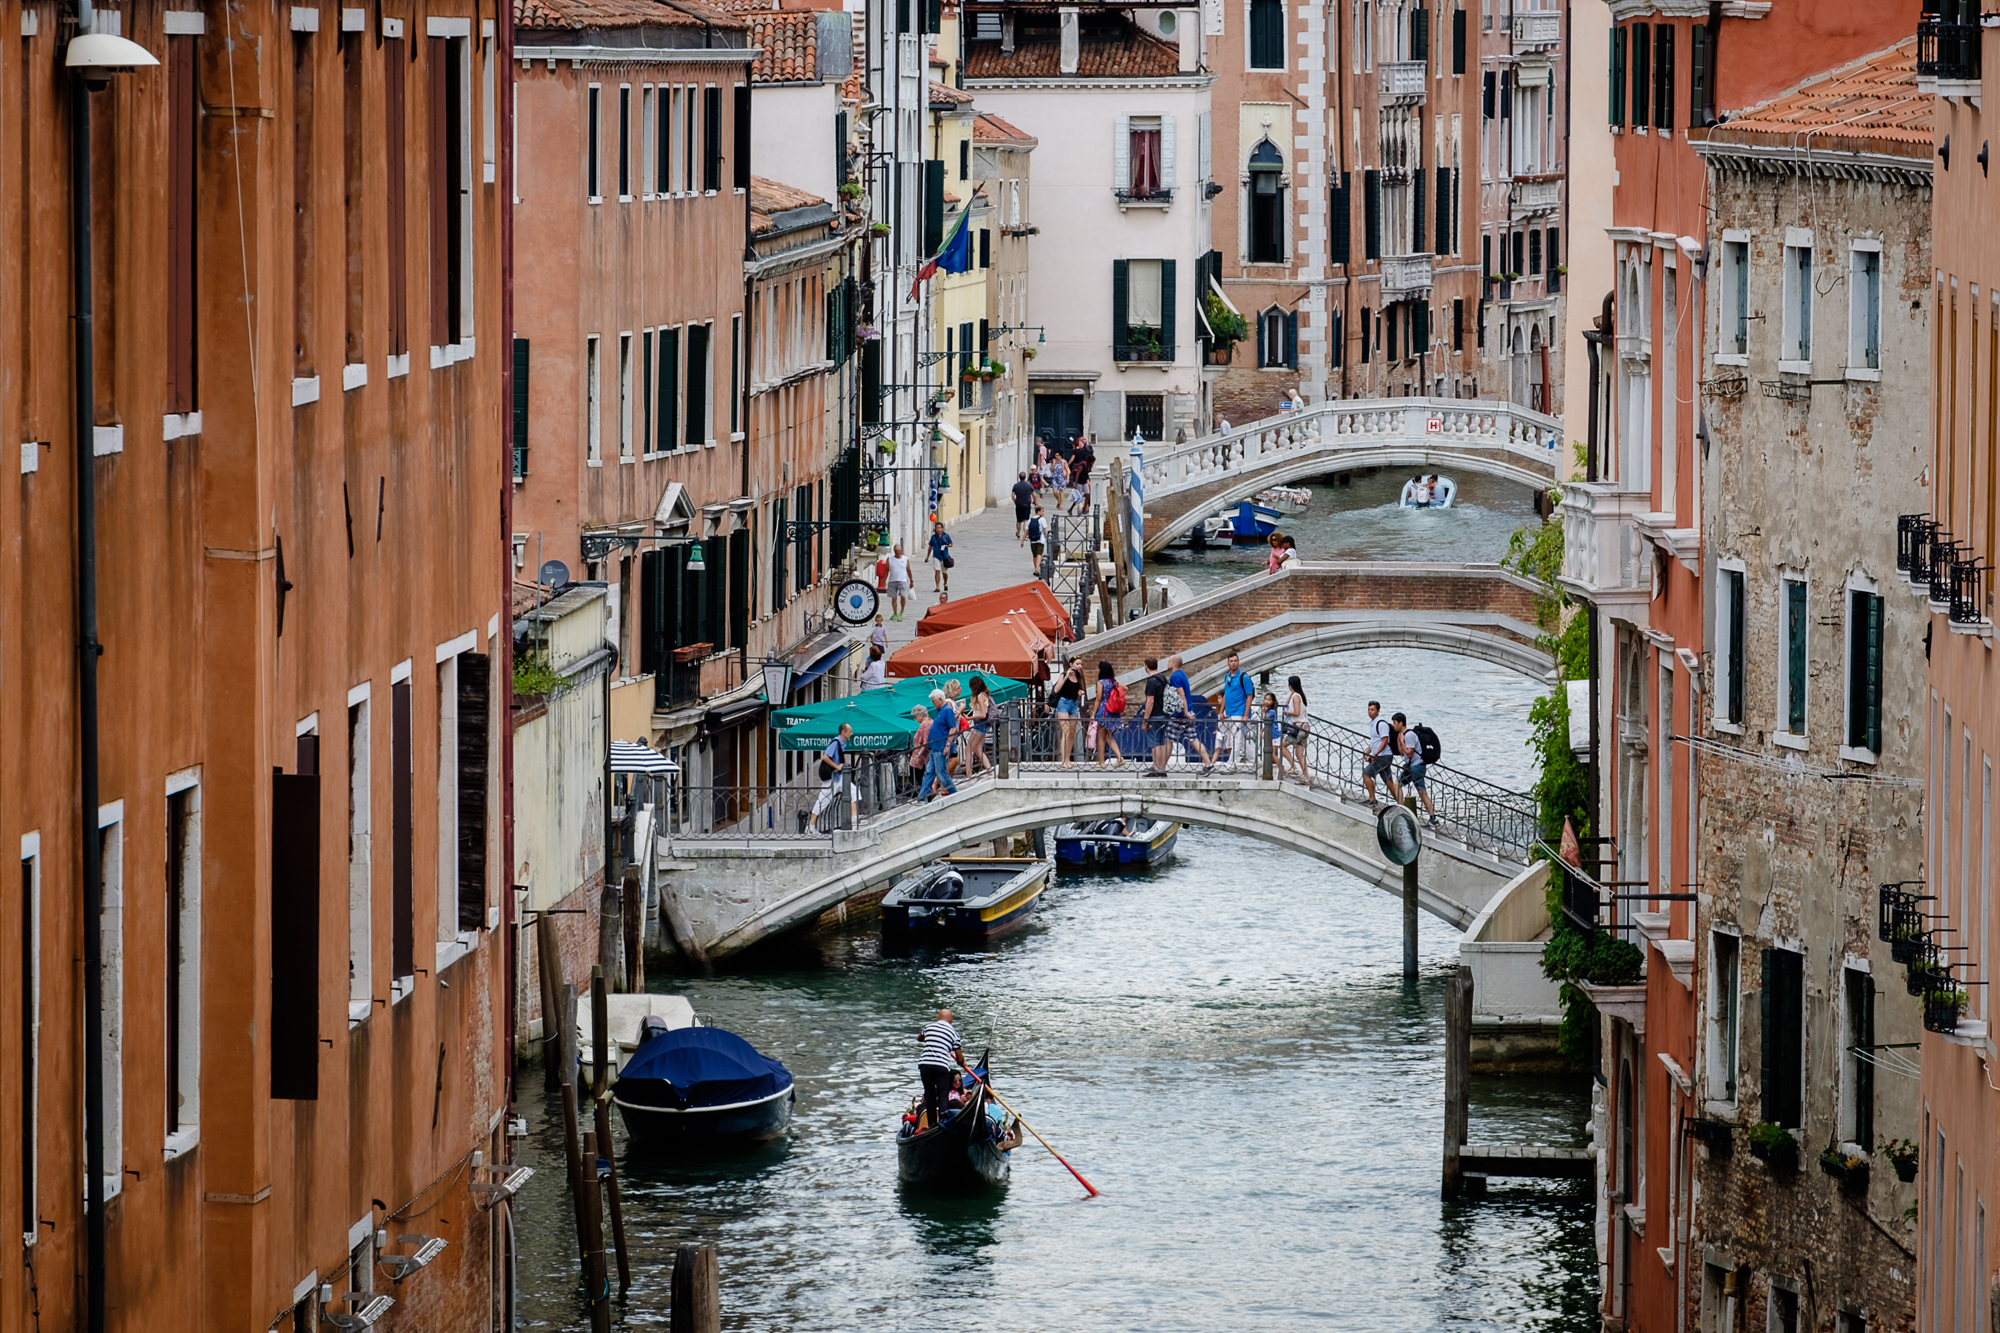 Photo of a venetian canal taken by Trevor Sherwin